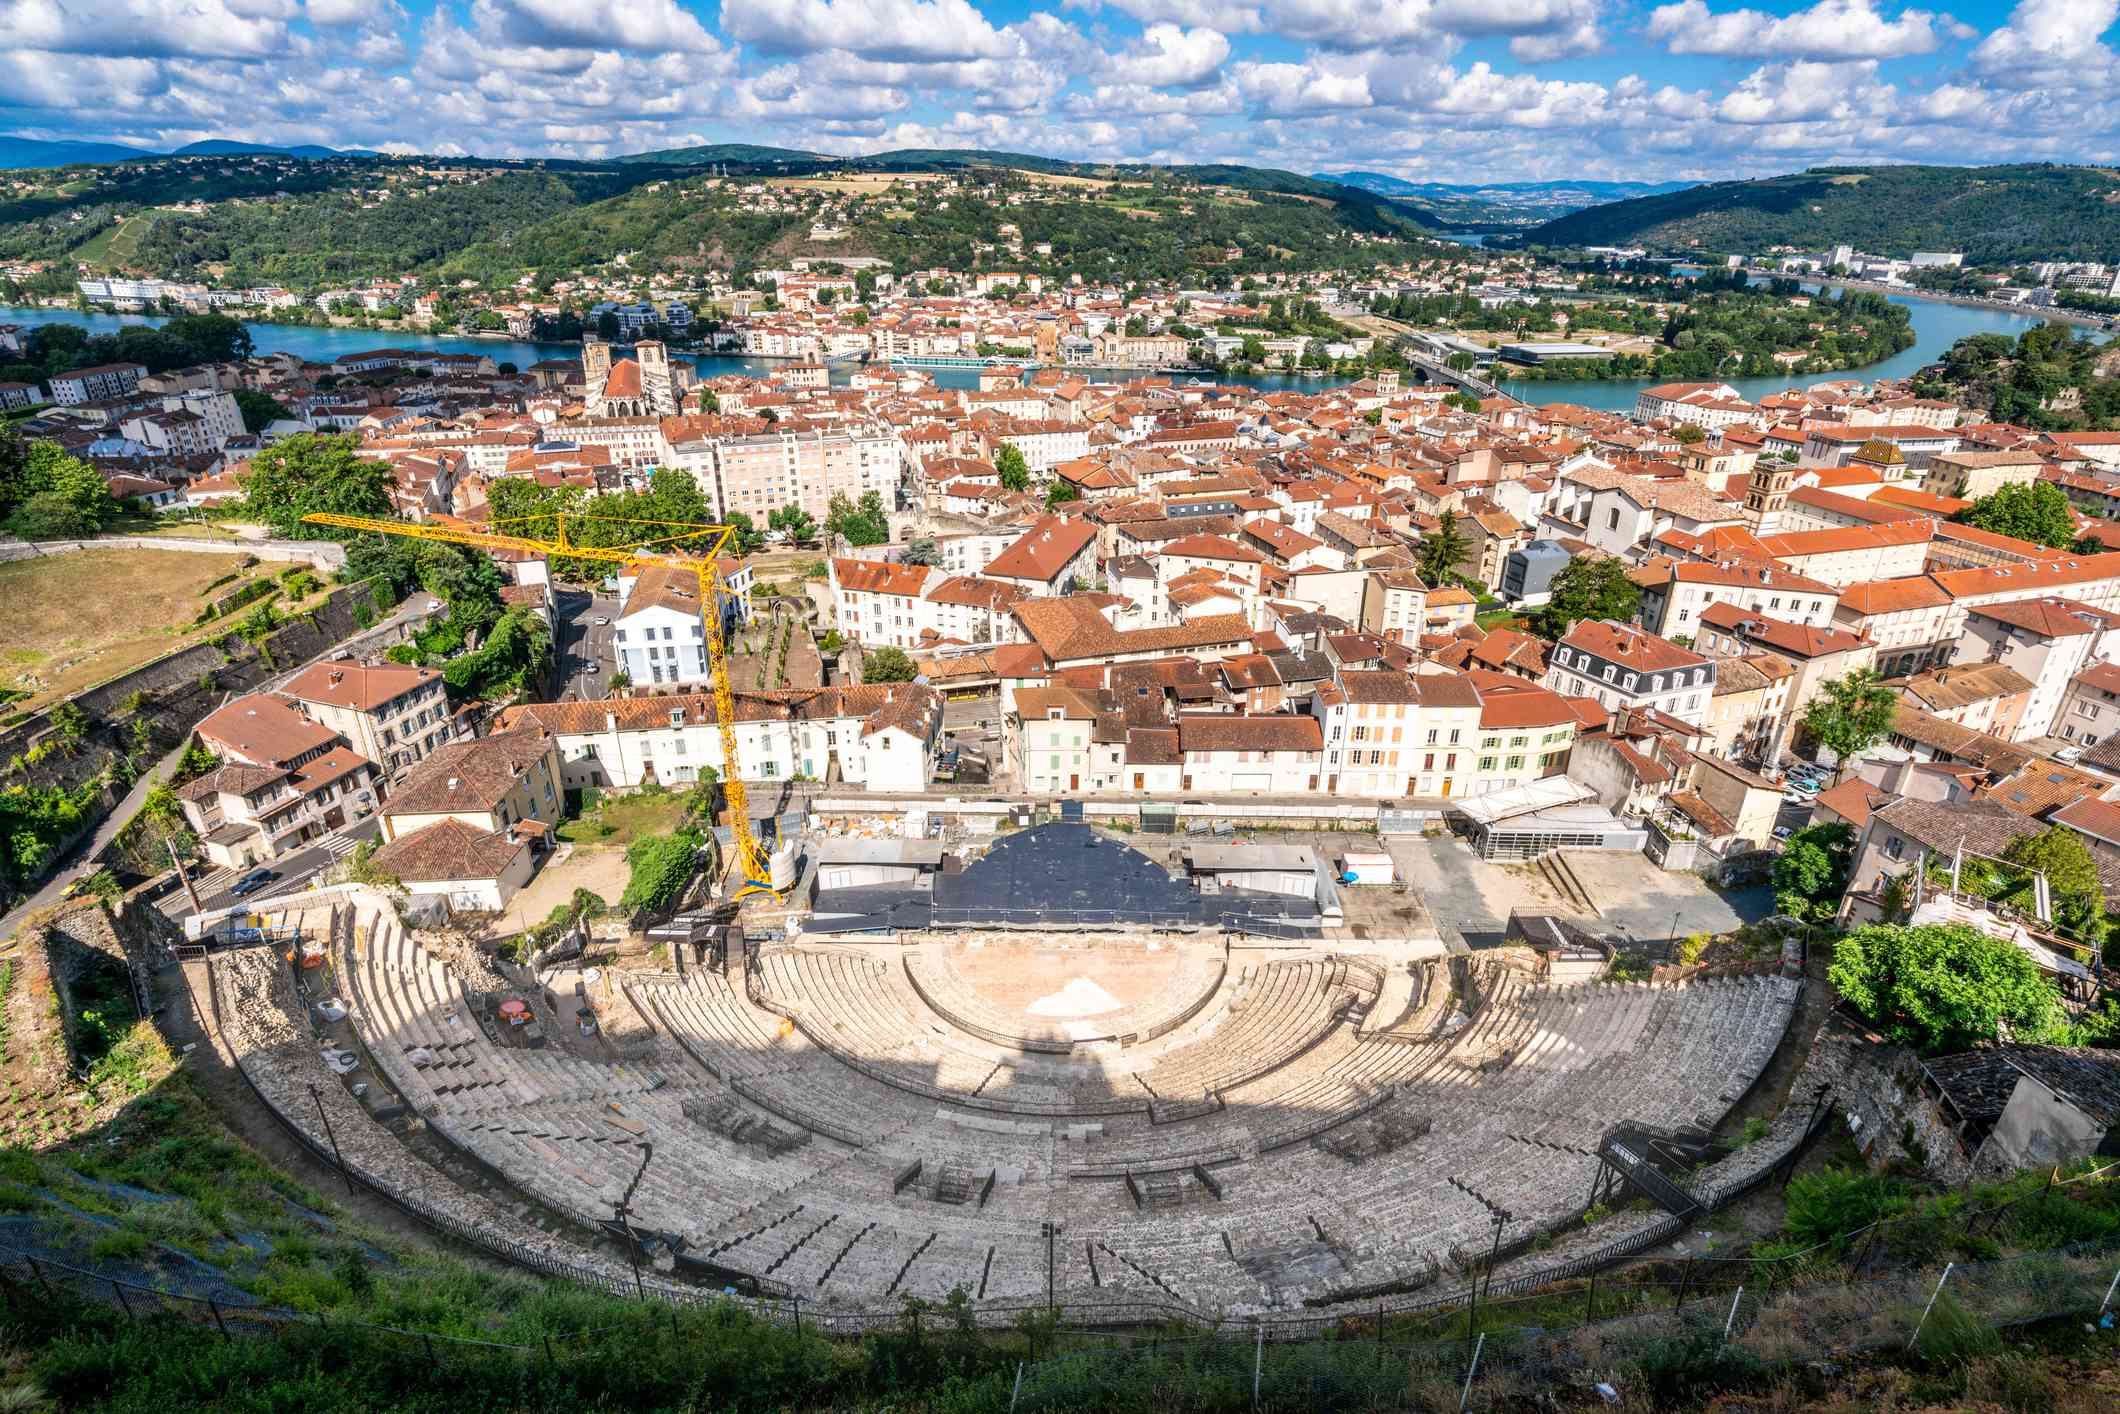 Cityscape of Vienne with the old city and aerial view of the ancient Gallo-Roman theatre in Vienne Isere France